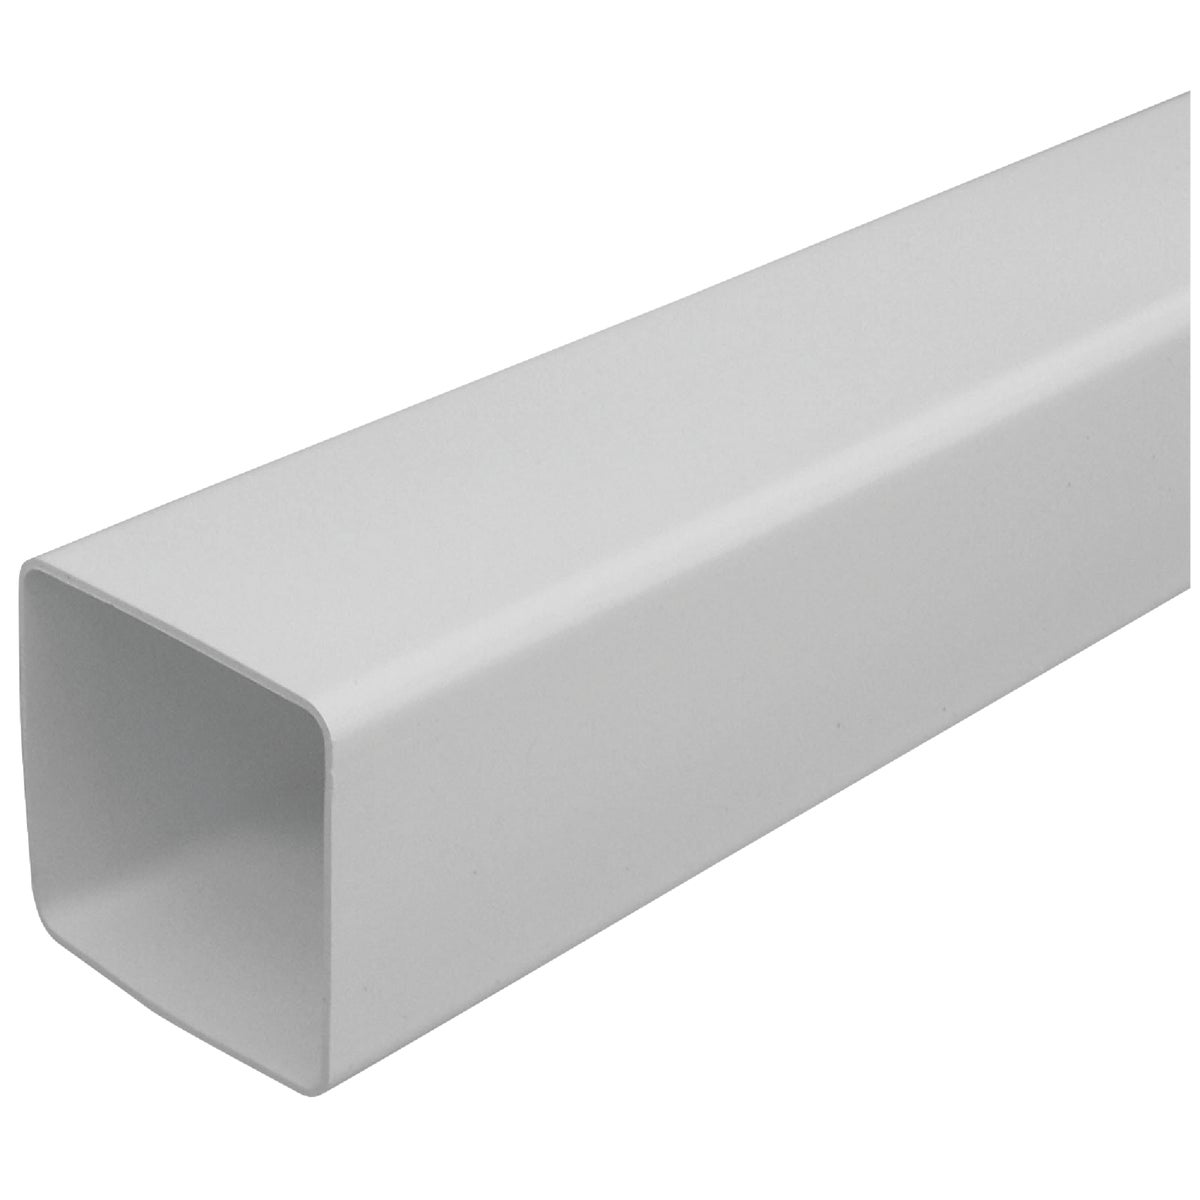 10' WHT VINYL DOWNSPOUT - RW200 by Genova Products